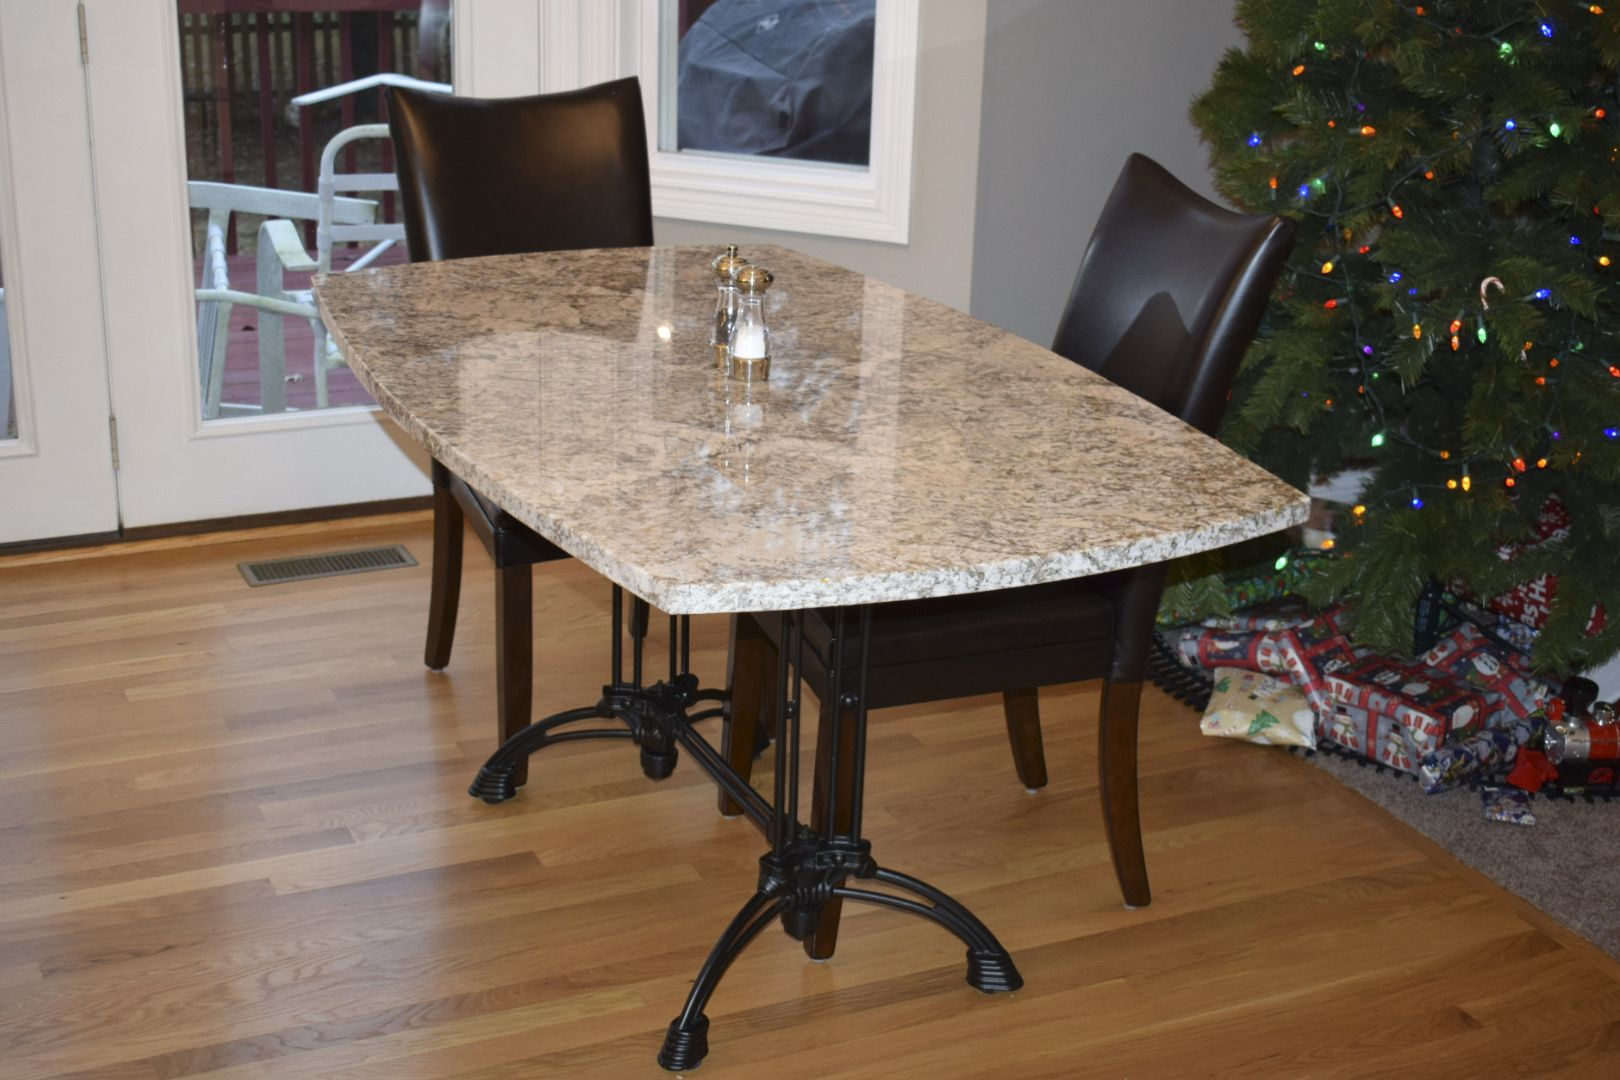 "Bruni 2 x 2 Table Base Under 32"" x 48"" Granite Table Top"